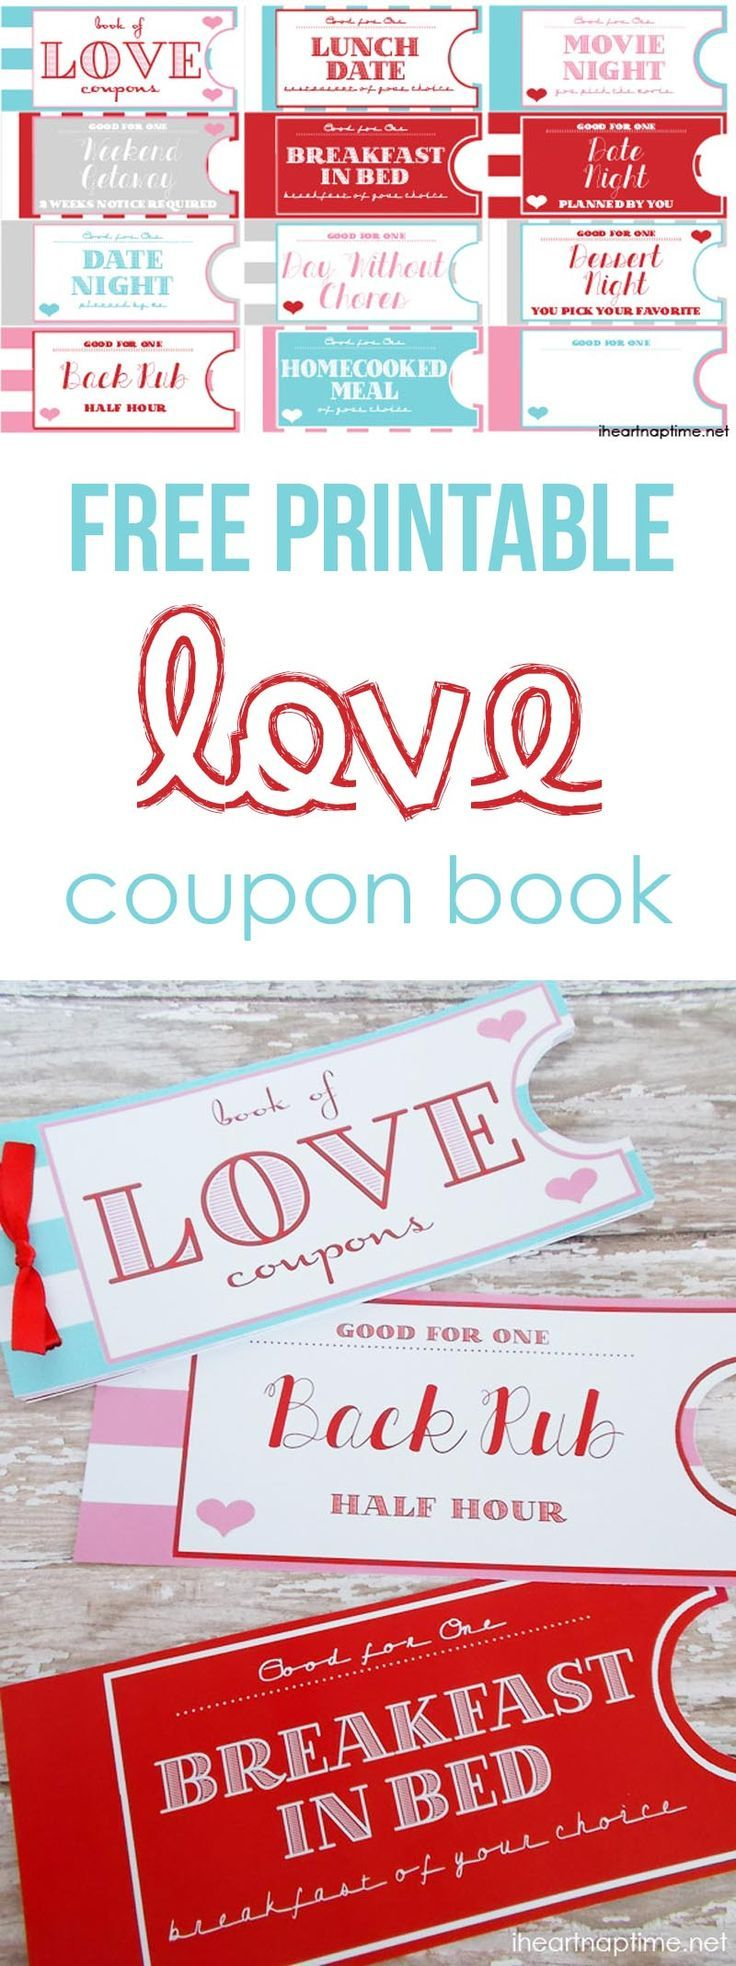 Free printable love coupon book on www.iheartnaptime.net/?utm_content=bufferb5724&utm_medium=social&utm_source=pinterest.com&utm_campaign=buffer ...such a fun and inexpensive gift idea!